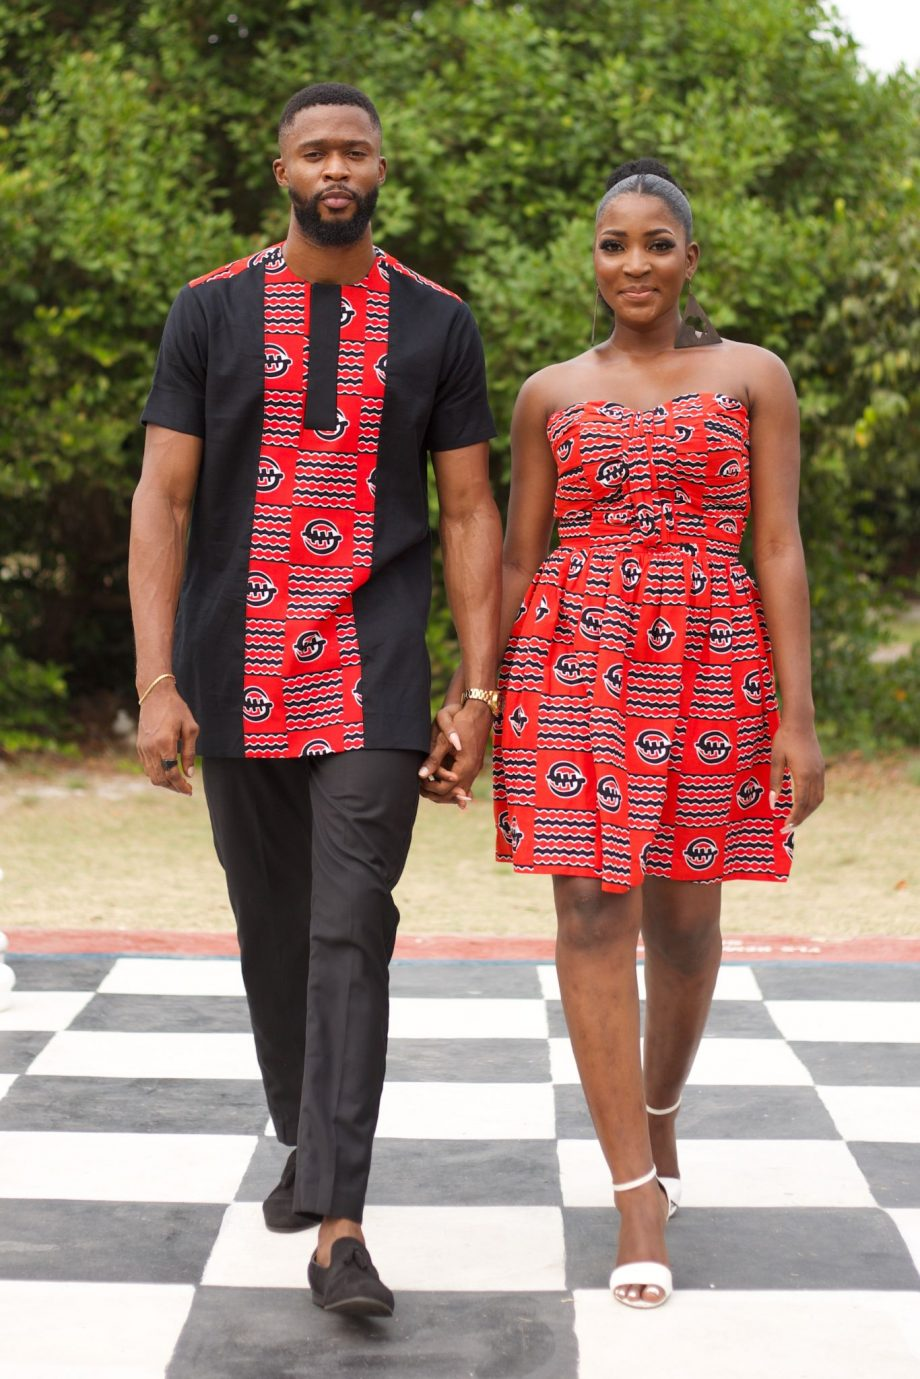 African Couples Outfits - JELA by Naborhi